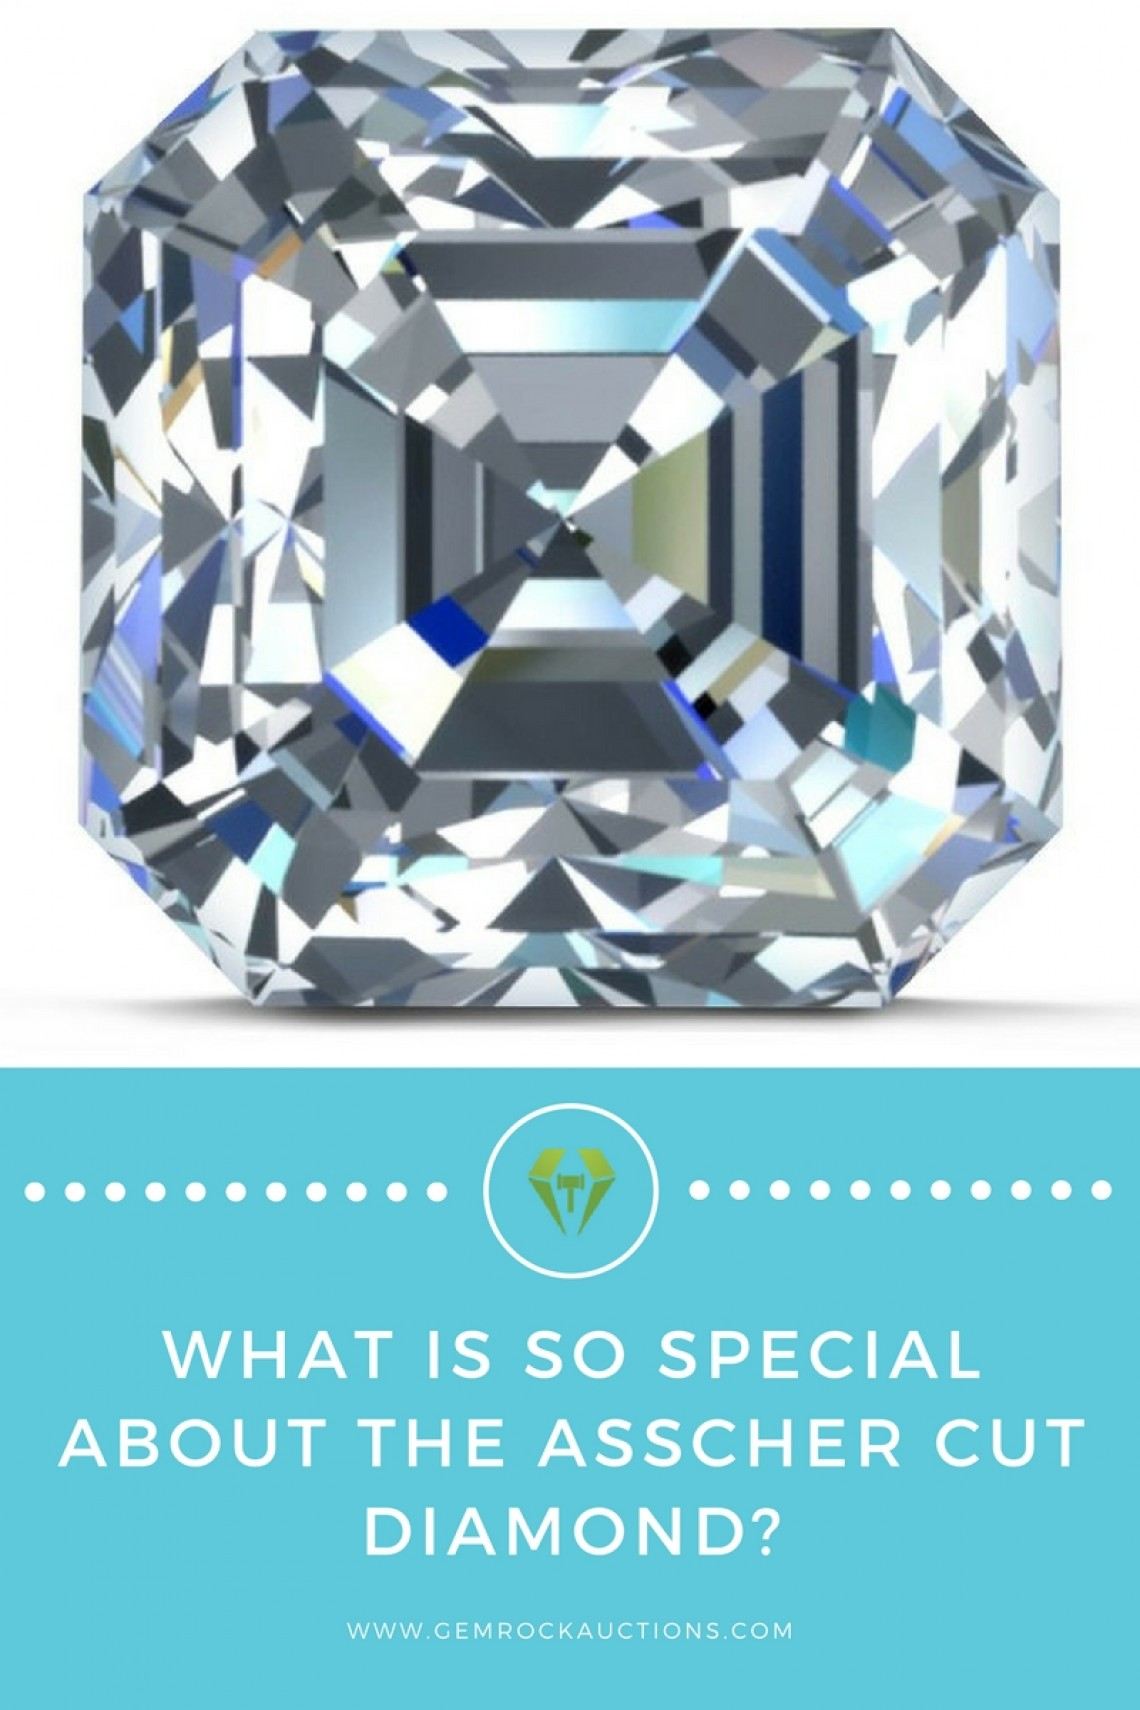 What is Special about the Asscher Cut